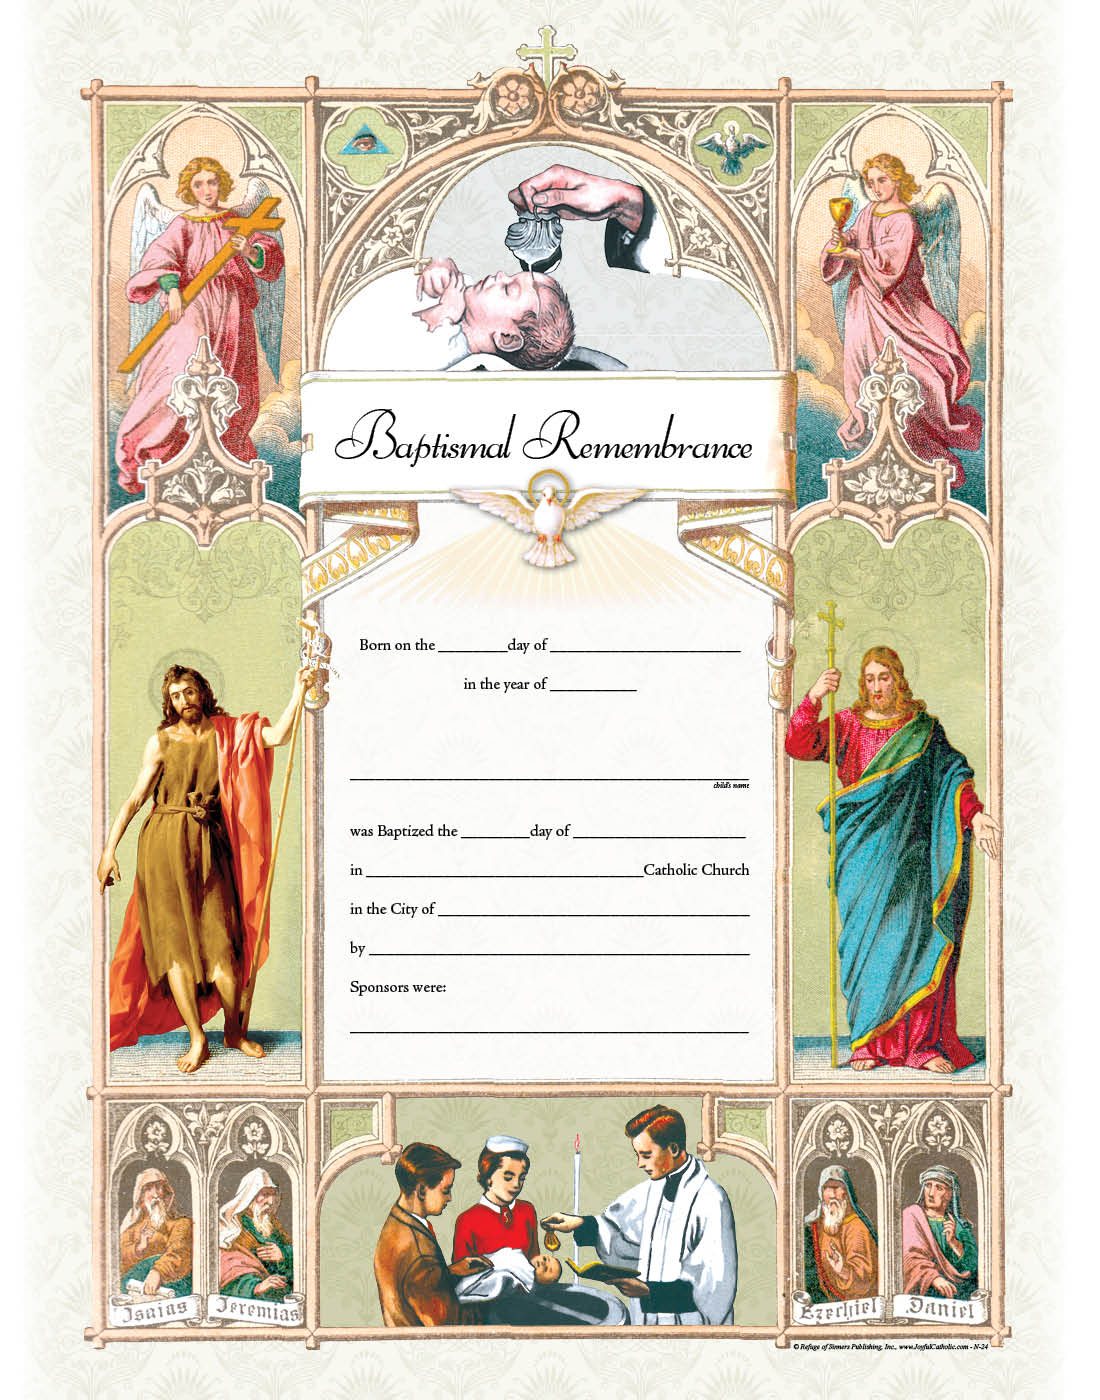 Baptismal Remembrance Certificate